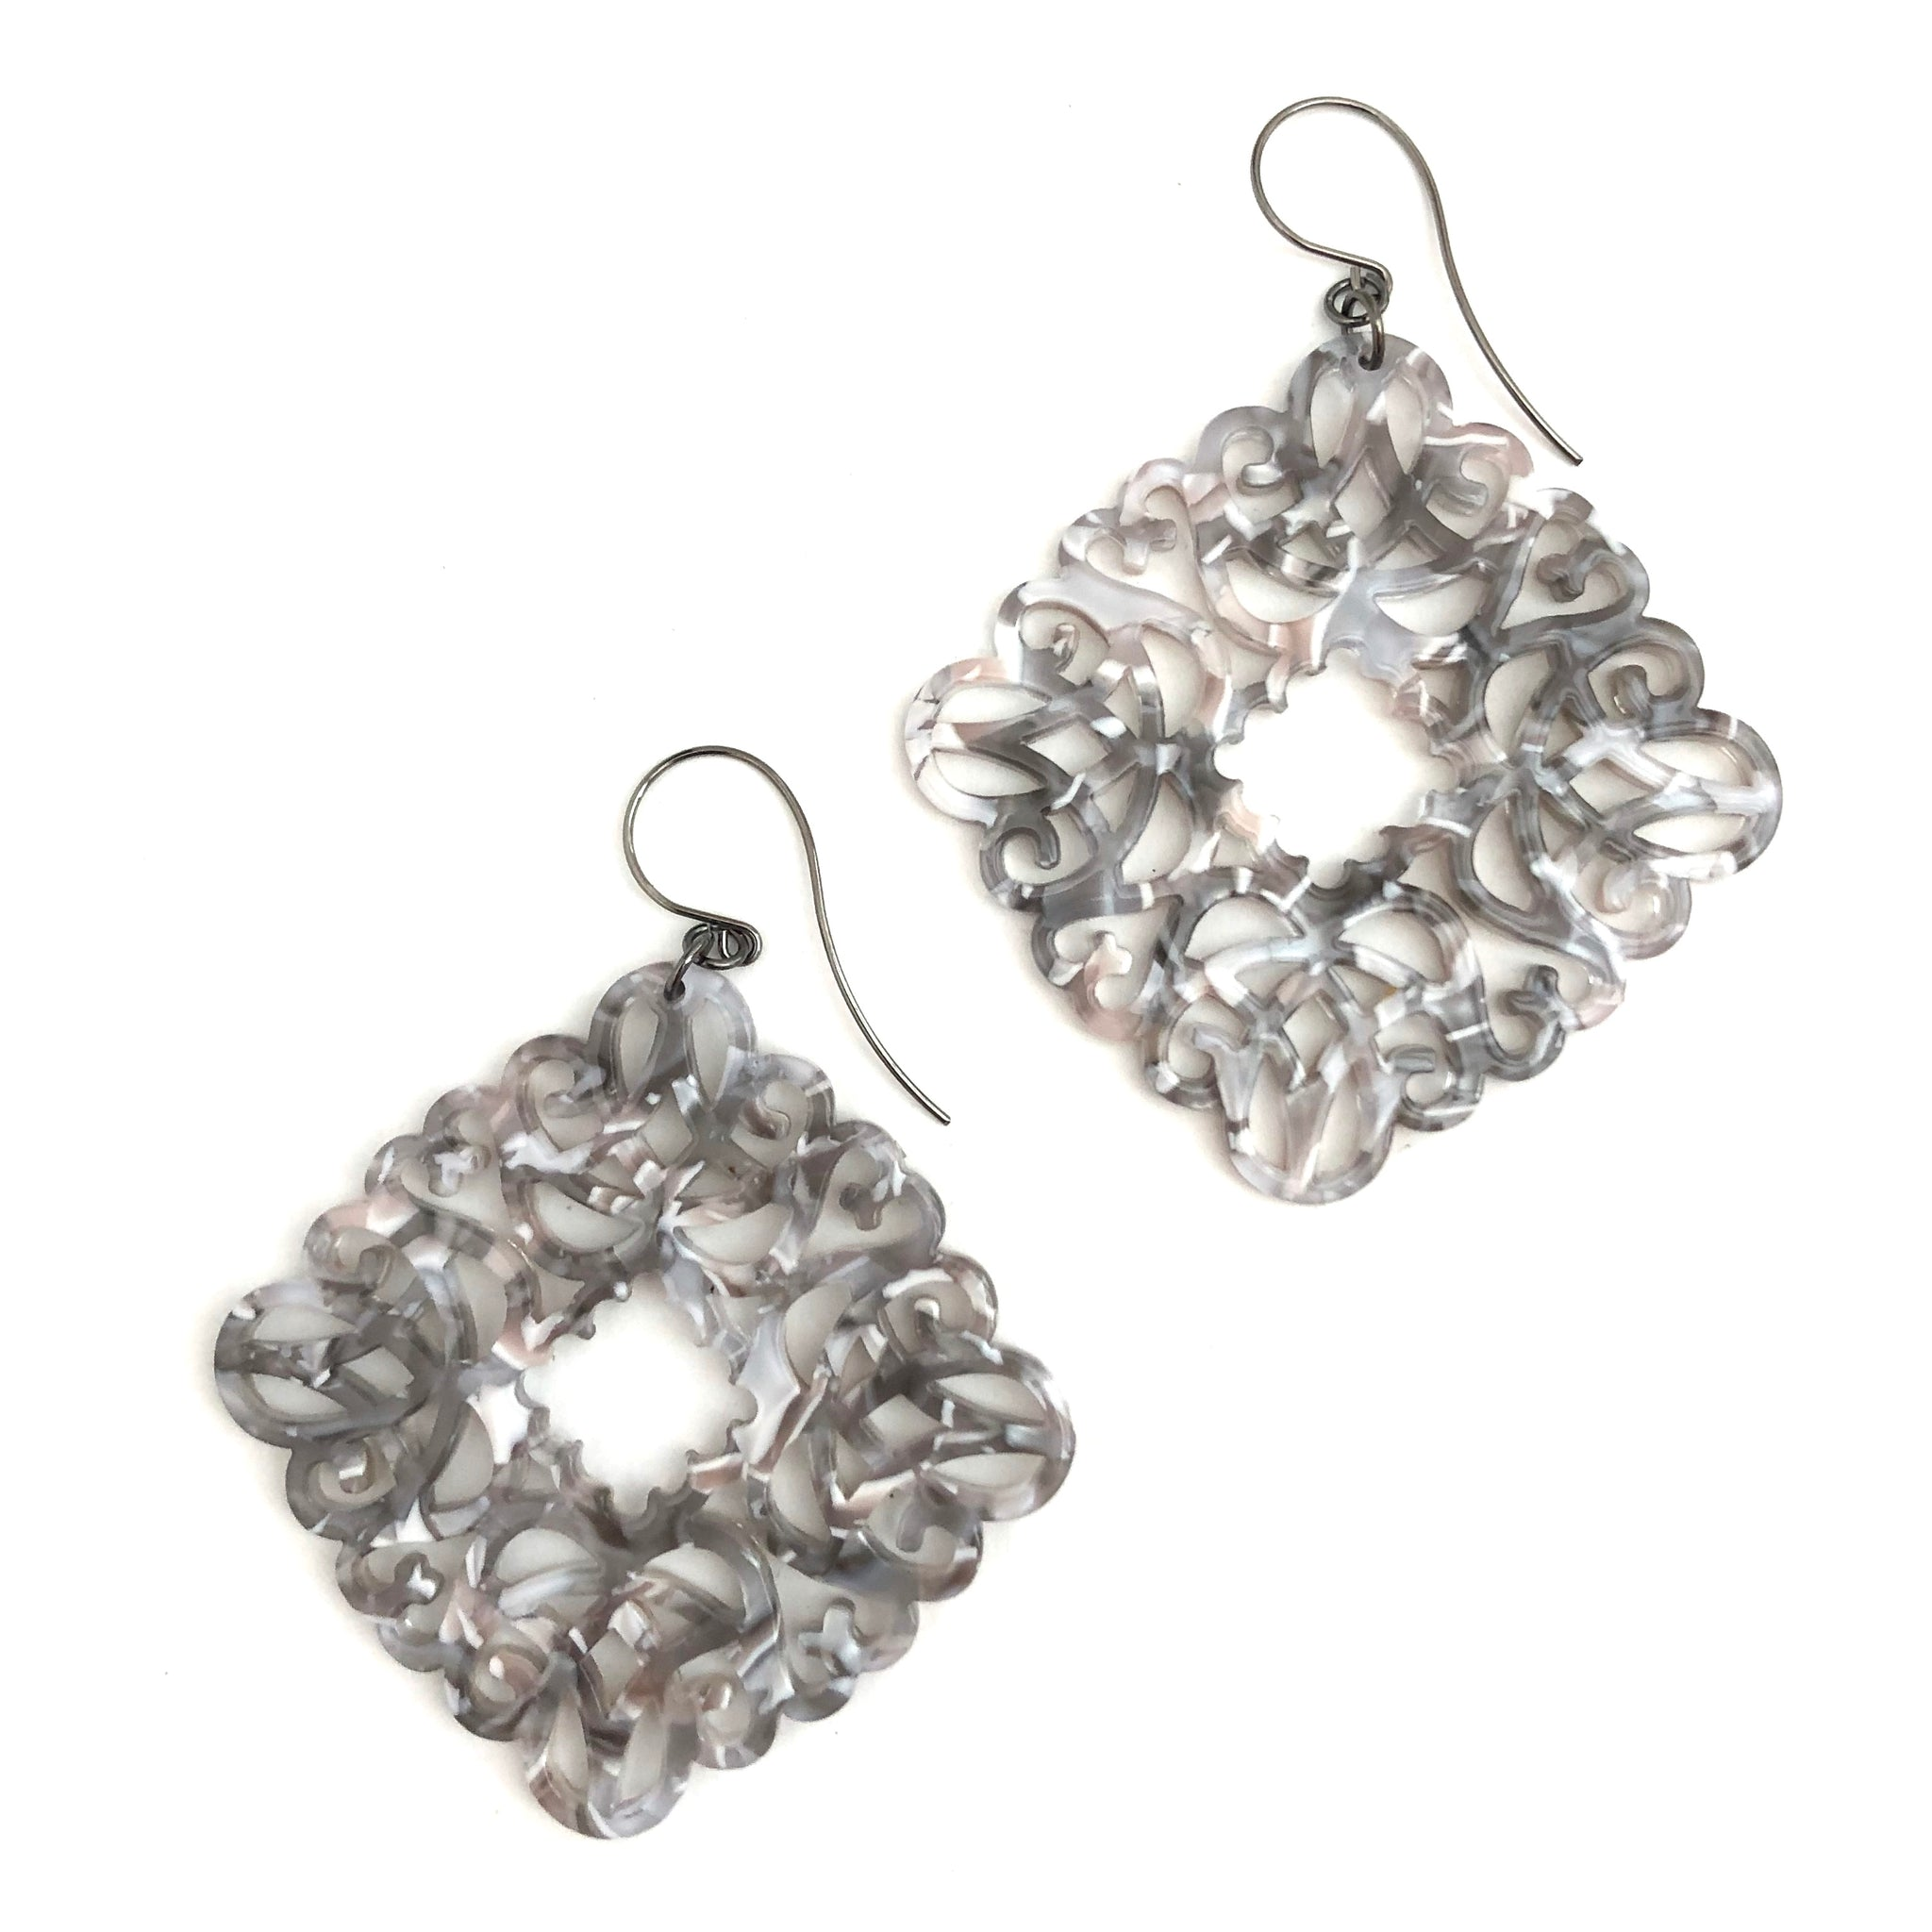 Grey & White Knotted Lace Drop Earrings